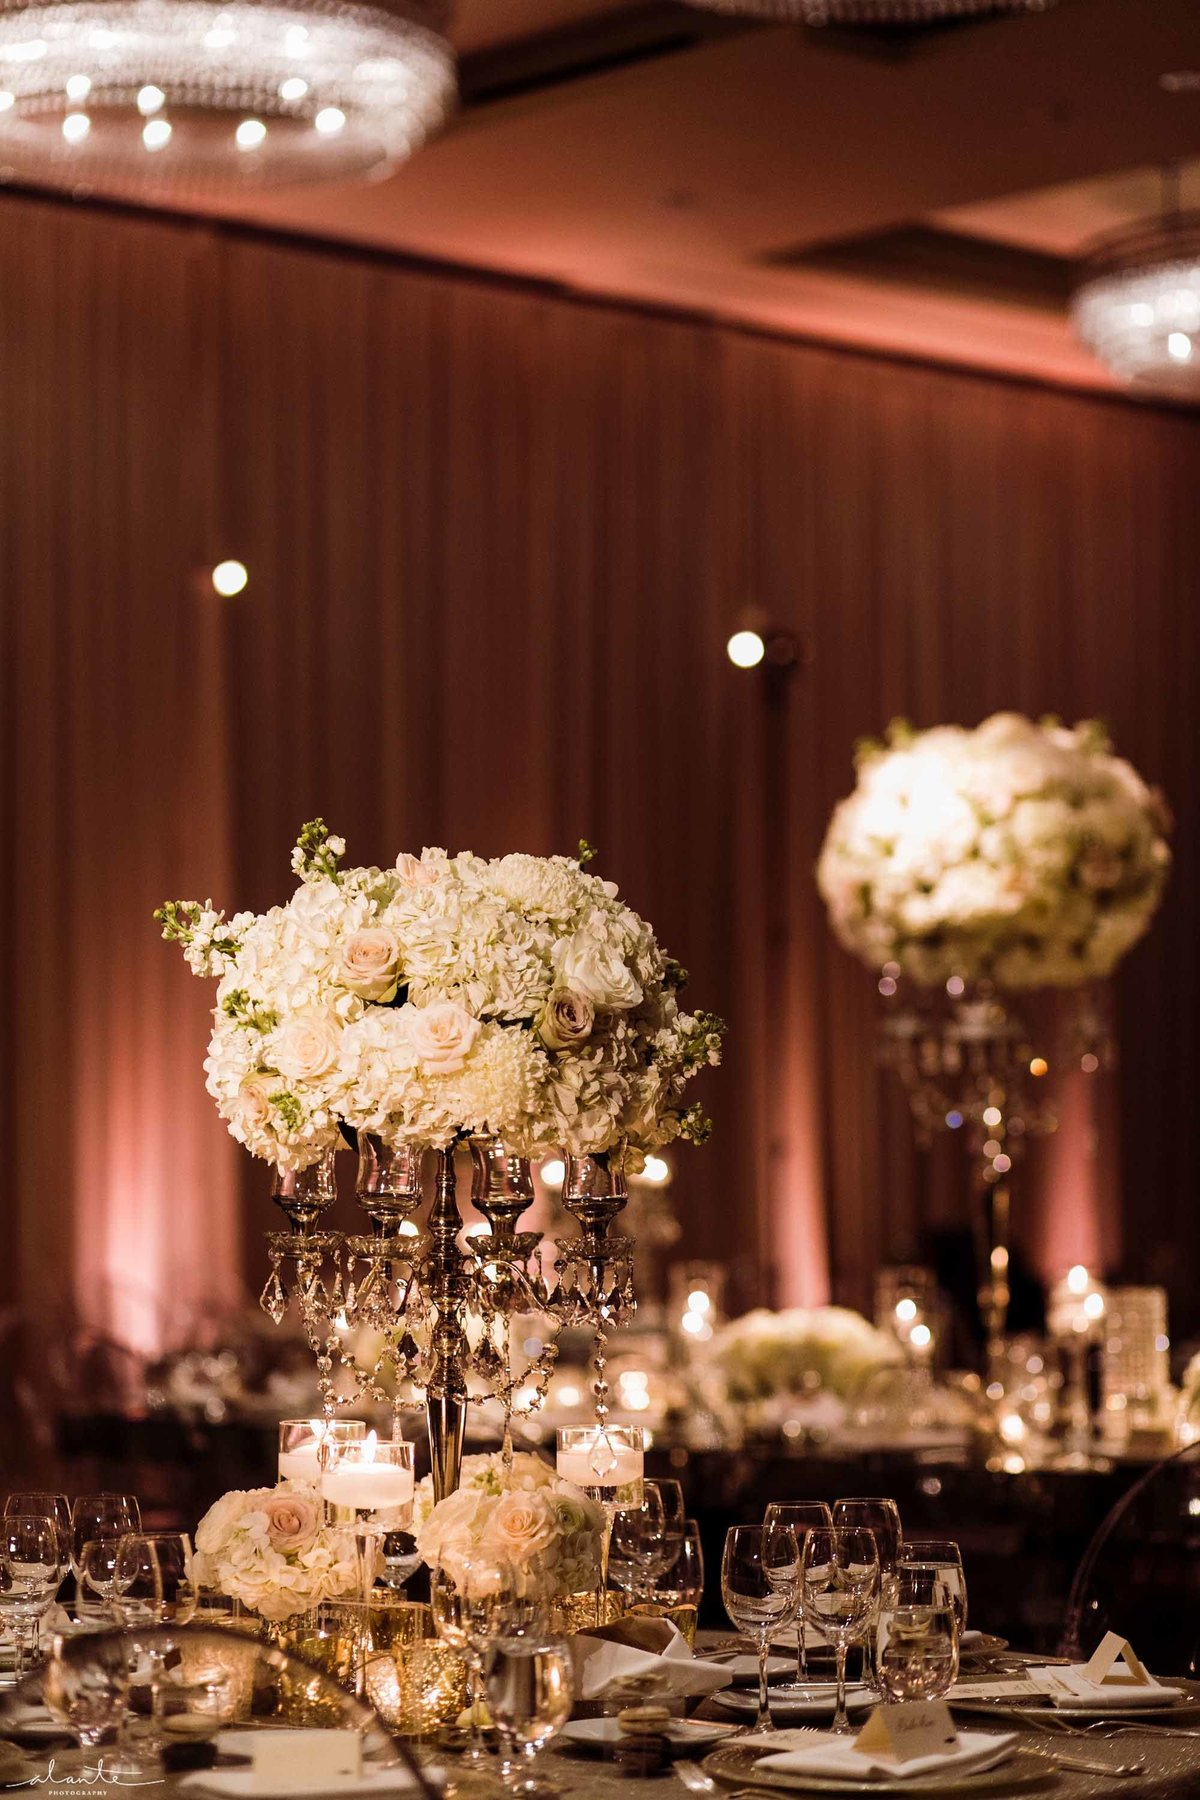 93Seattle-luxury-wedding-Flora-Nova-Design